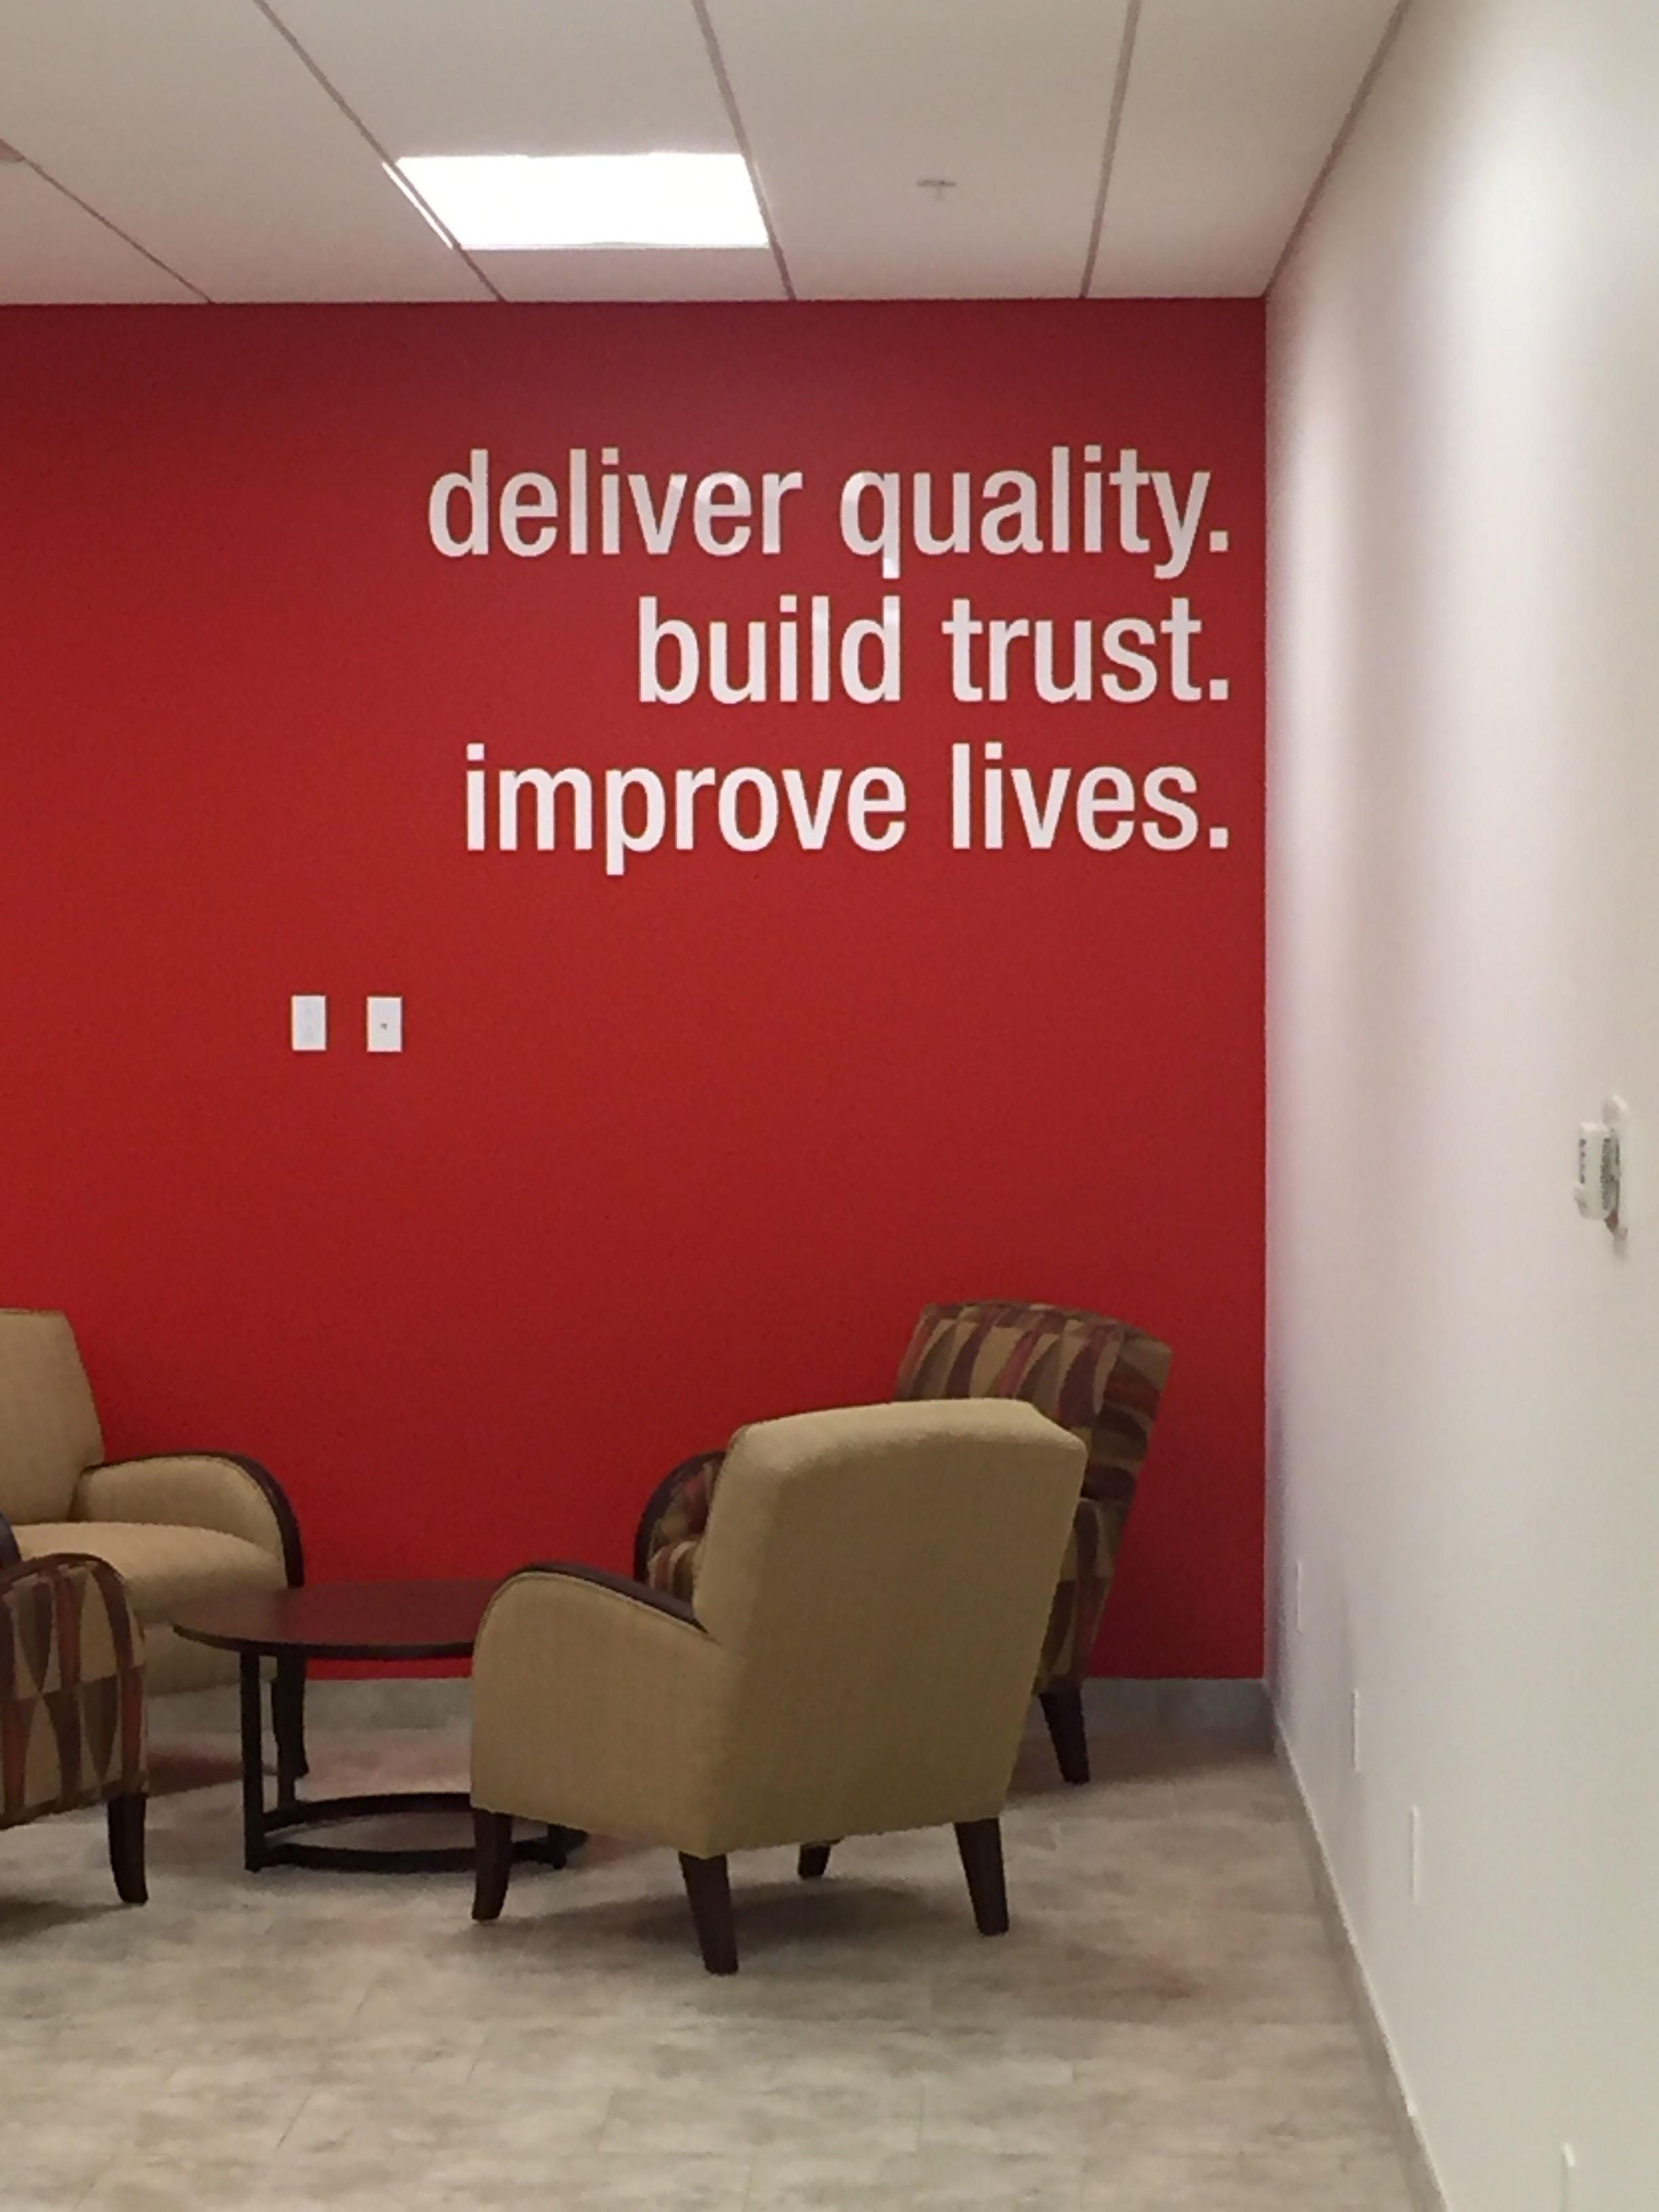 Laser cut white acrylic lettering, mounted directly to wall using precision installation template.